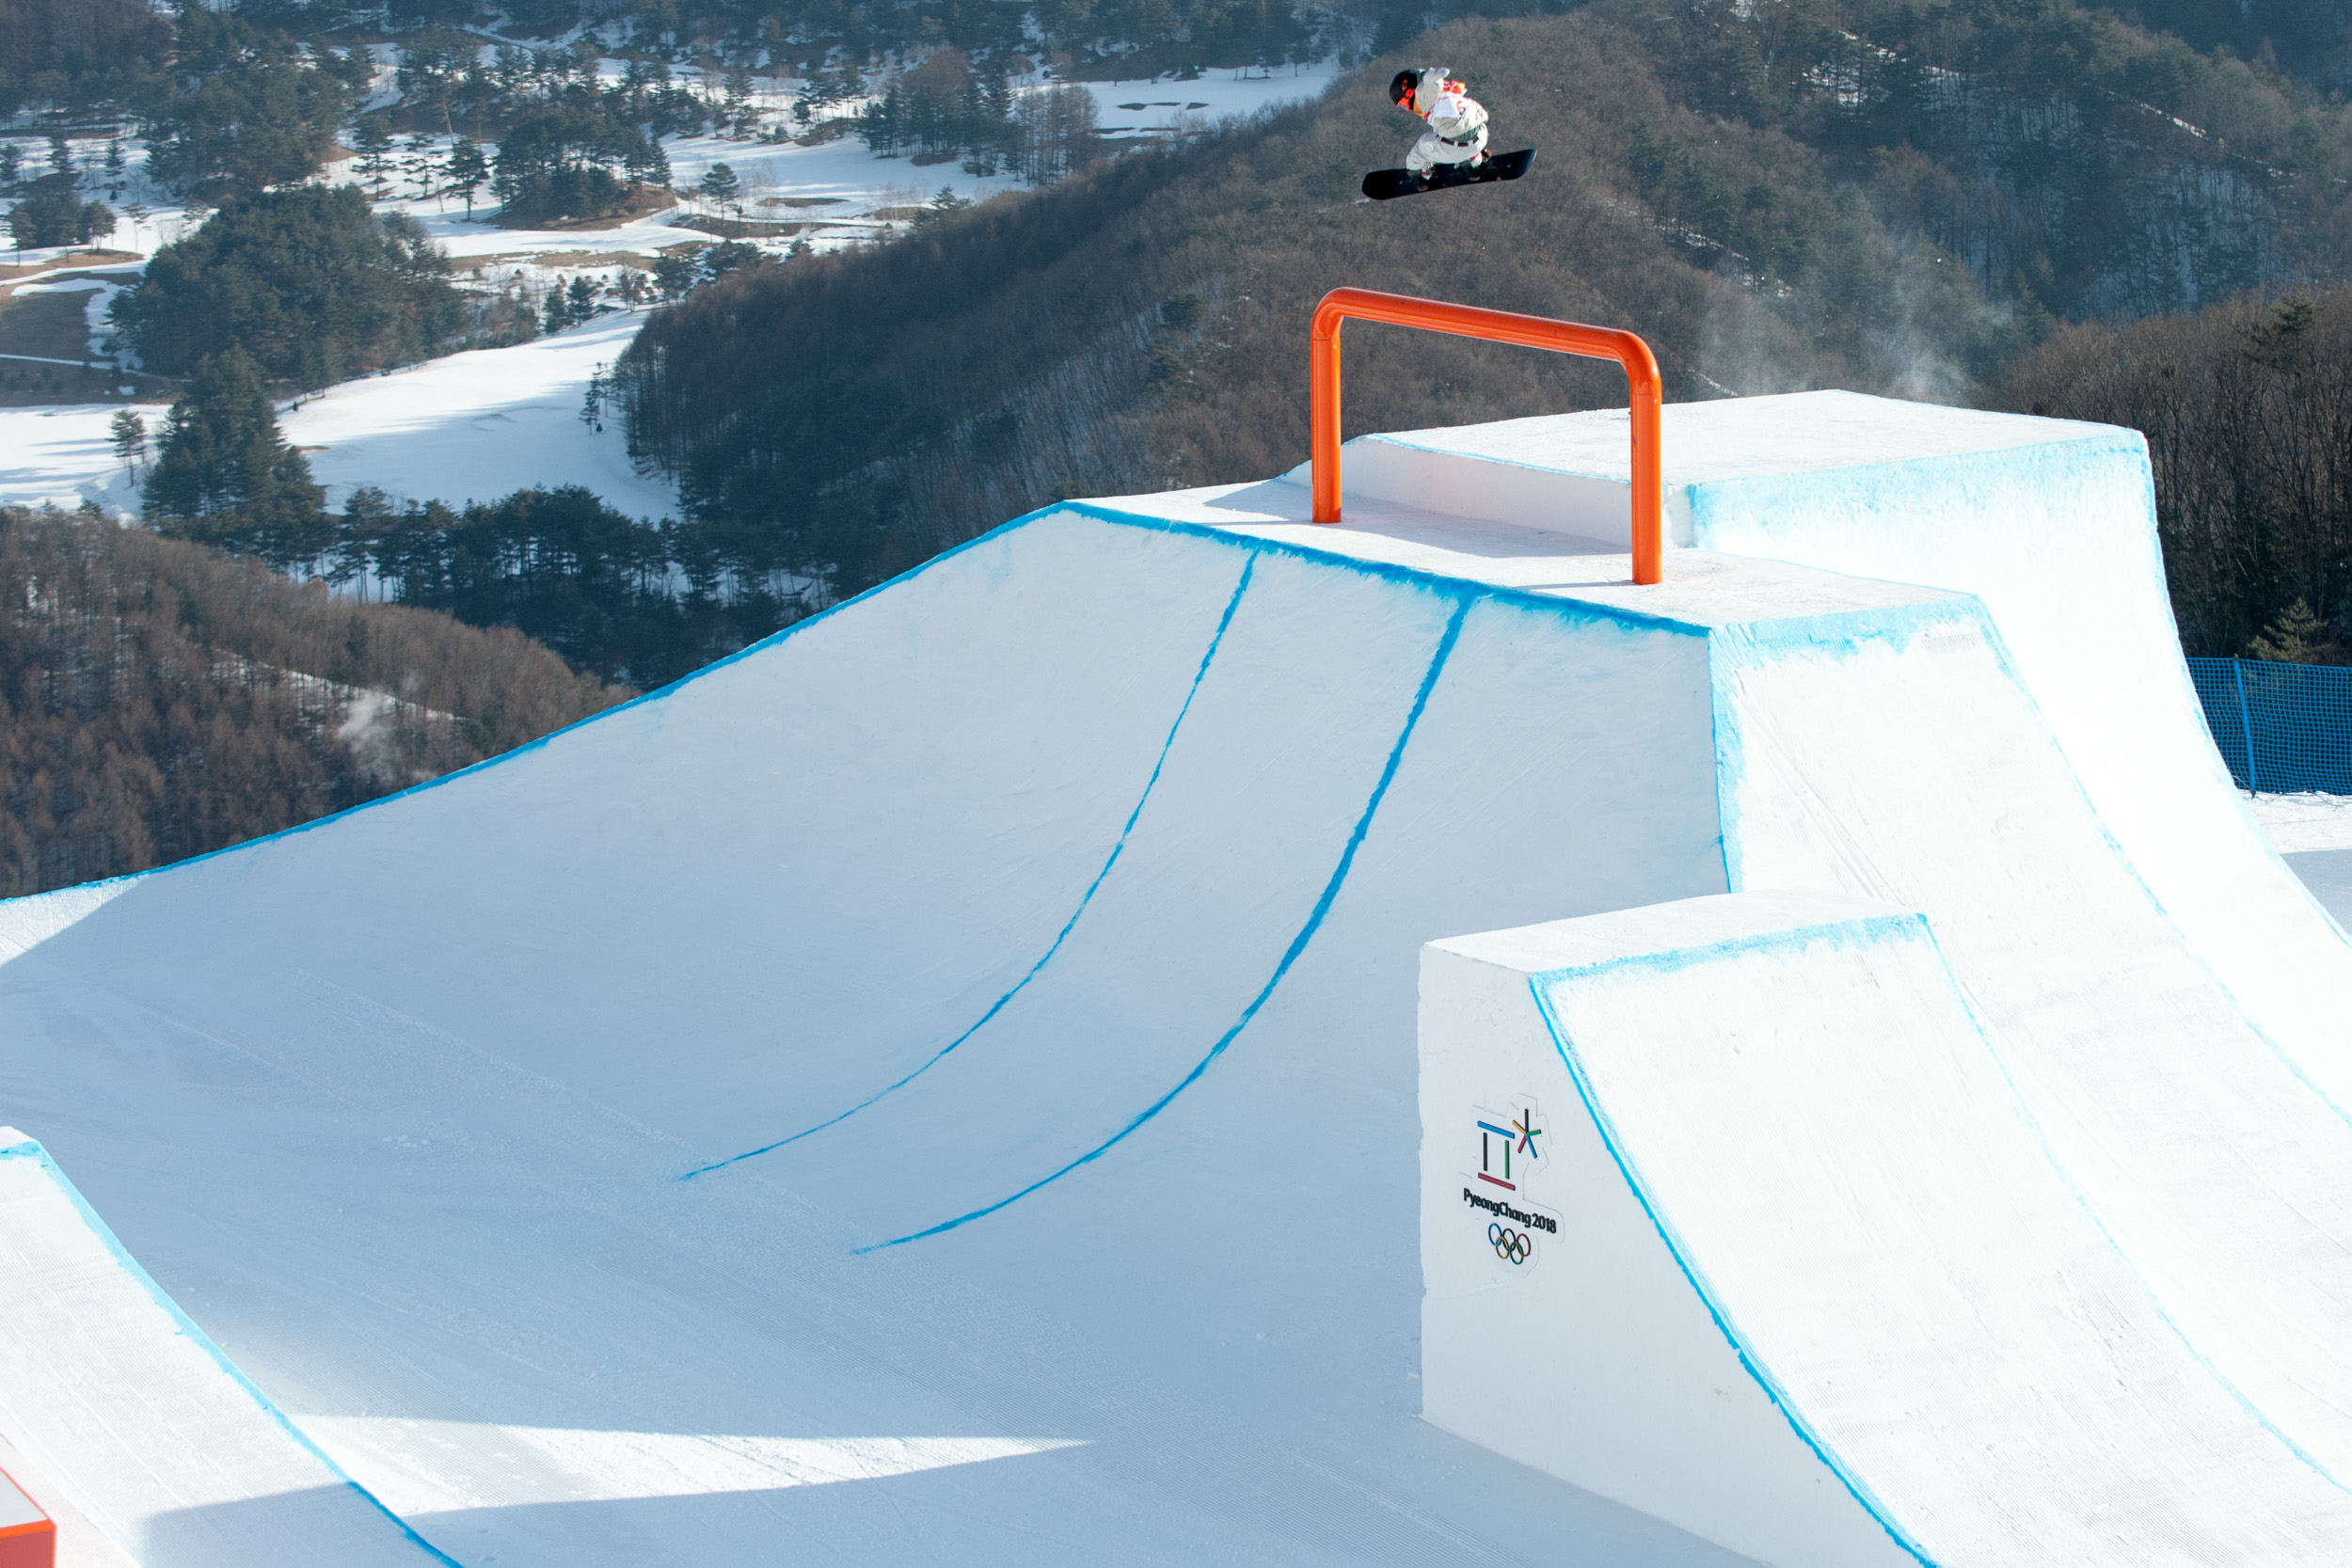 Winter Olympics: Red Gerard, 17, wins shock slopestyle gold